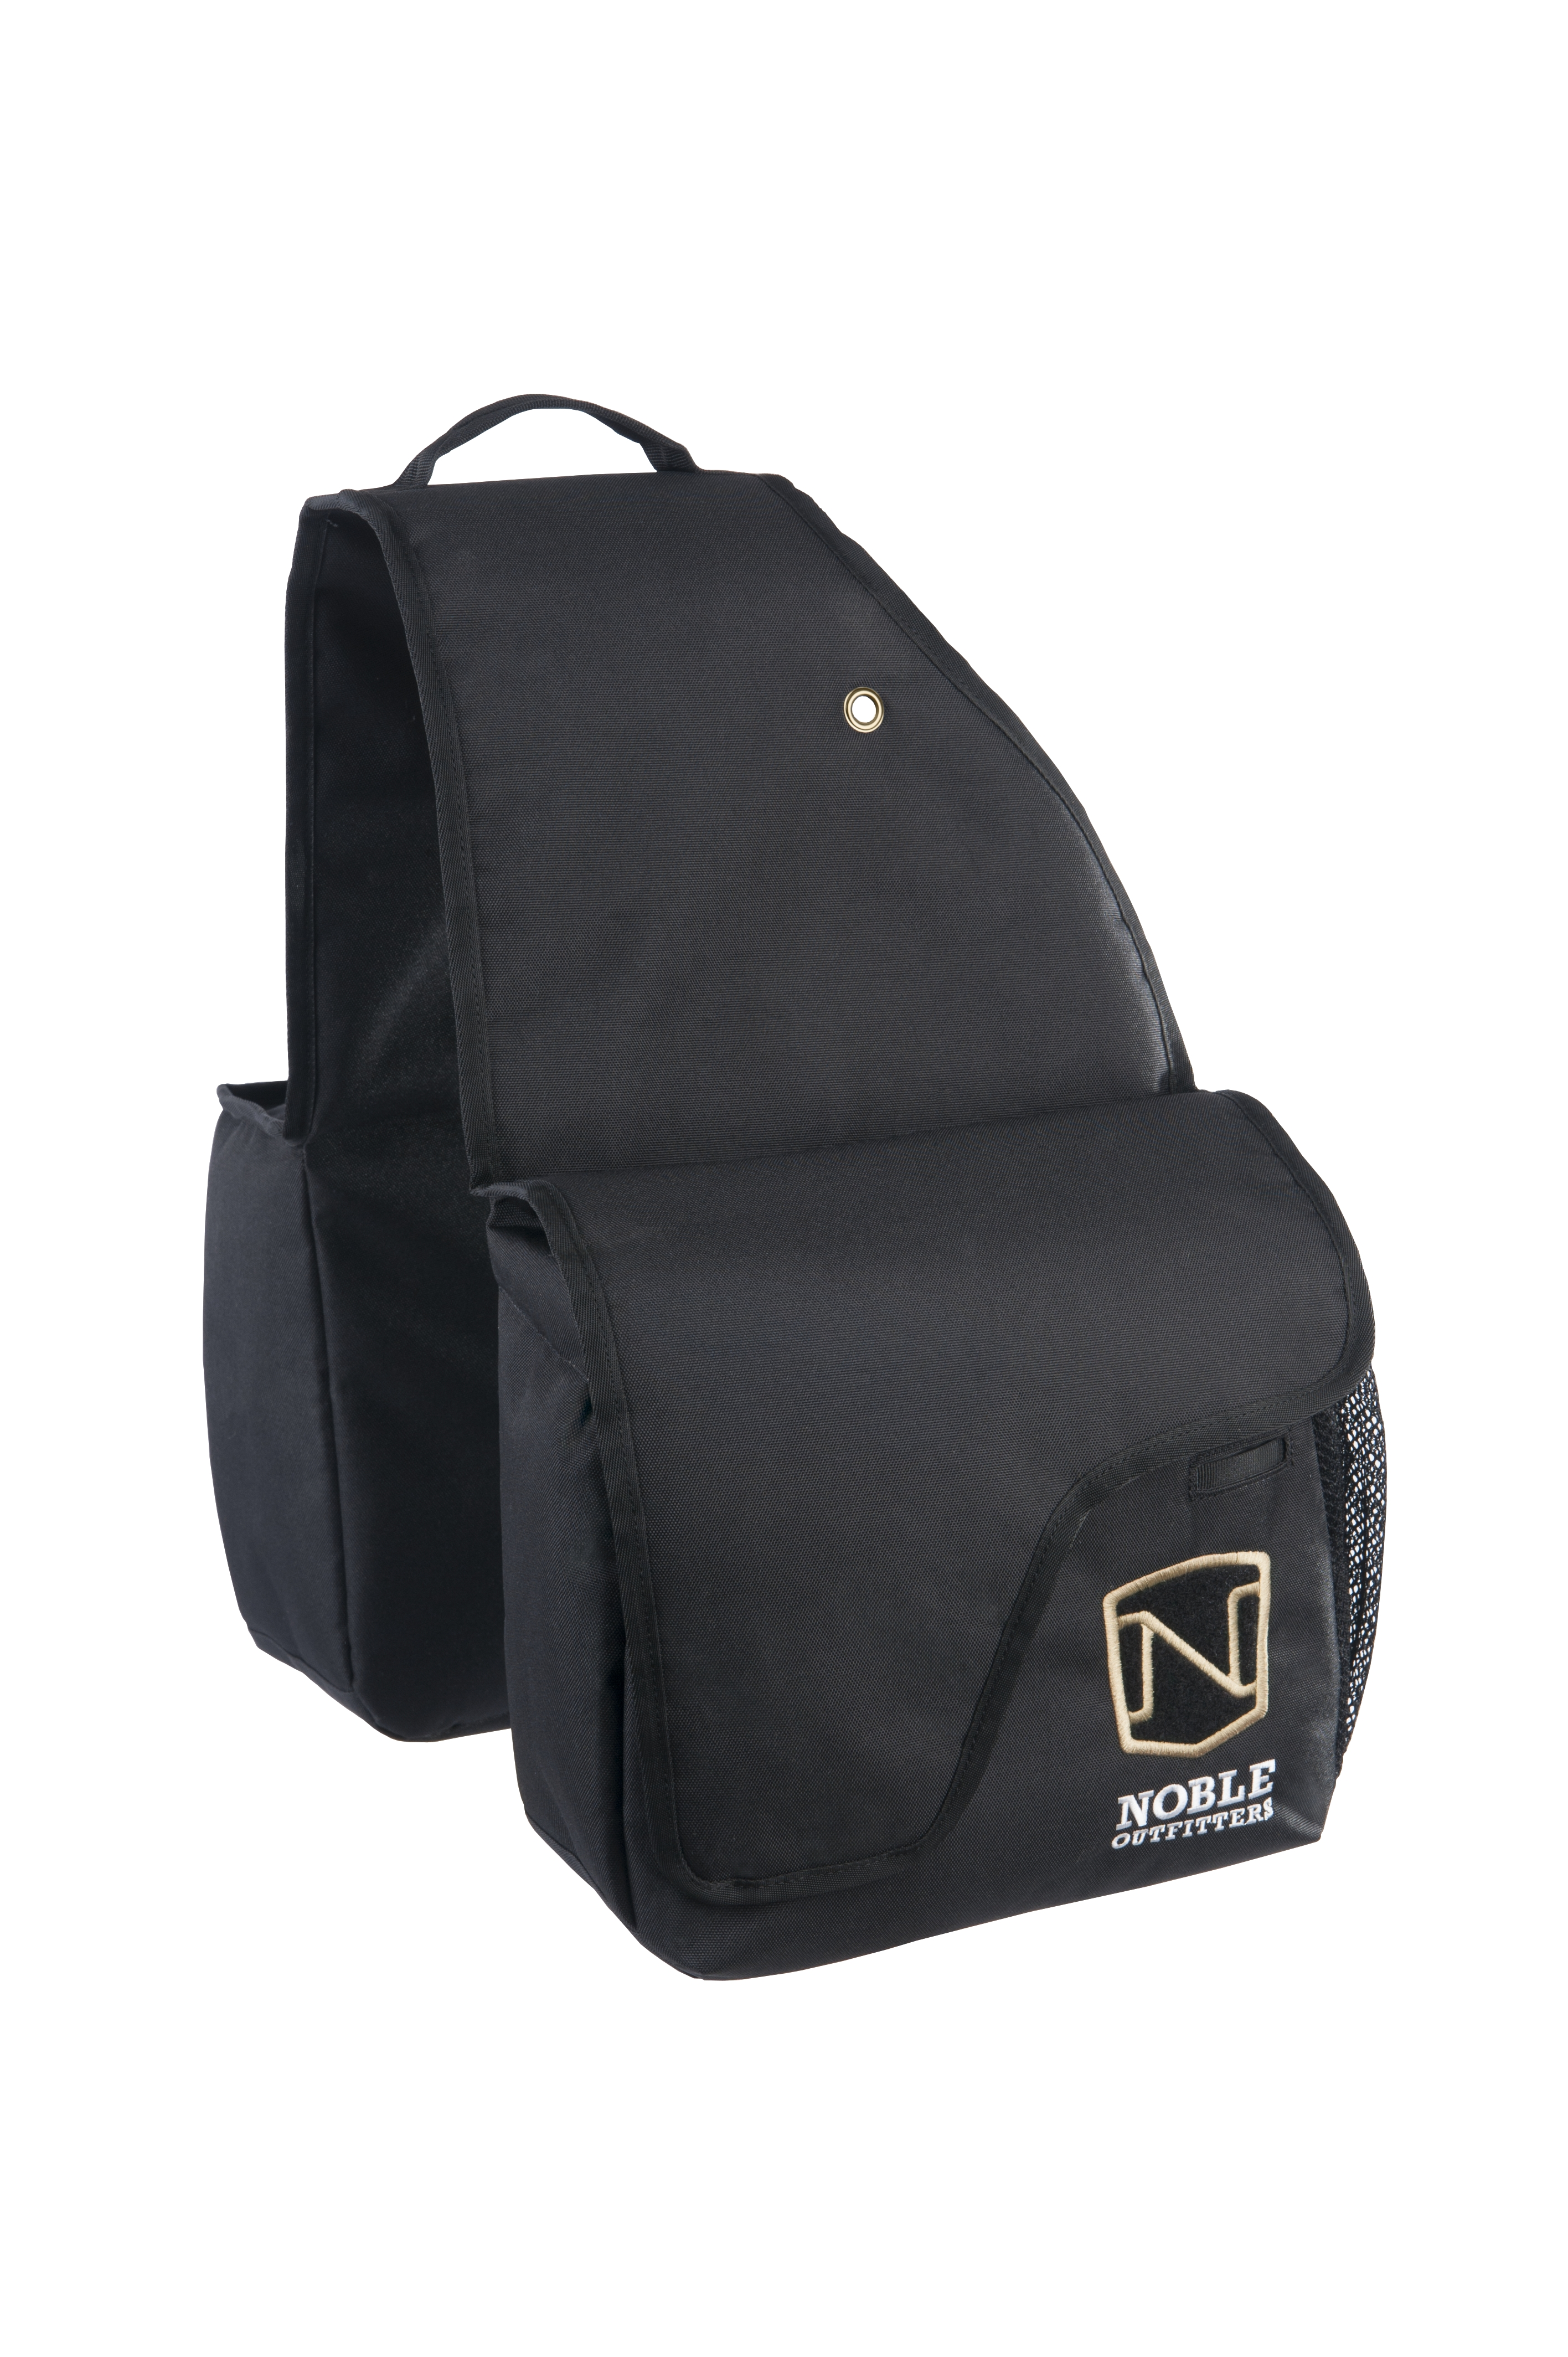 Noble Outfitters Trail Blazer Saddle Bag + FREE 5 o'clock Hoof Pick Valued at $11.99